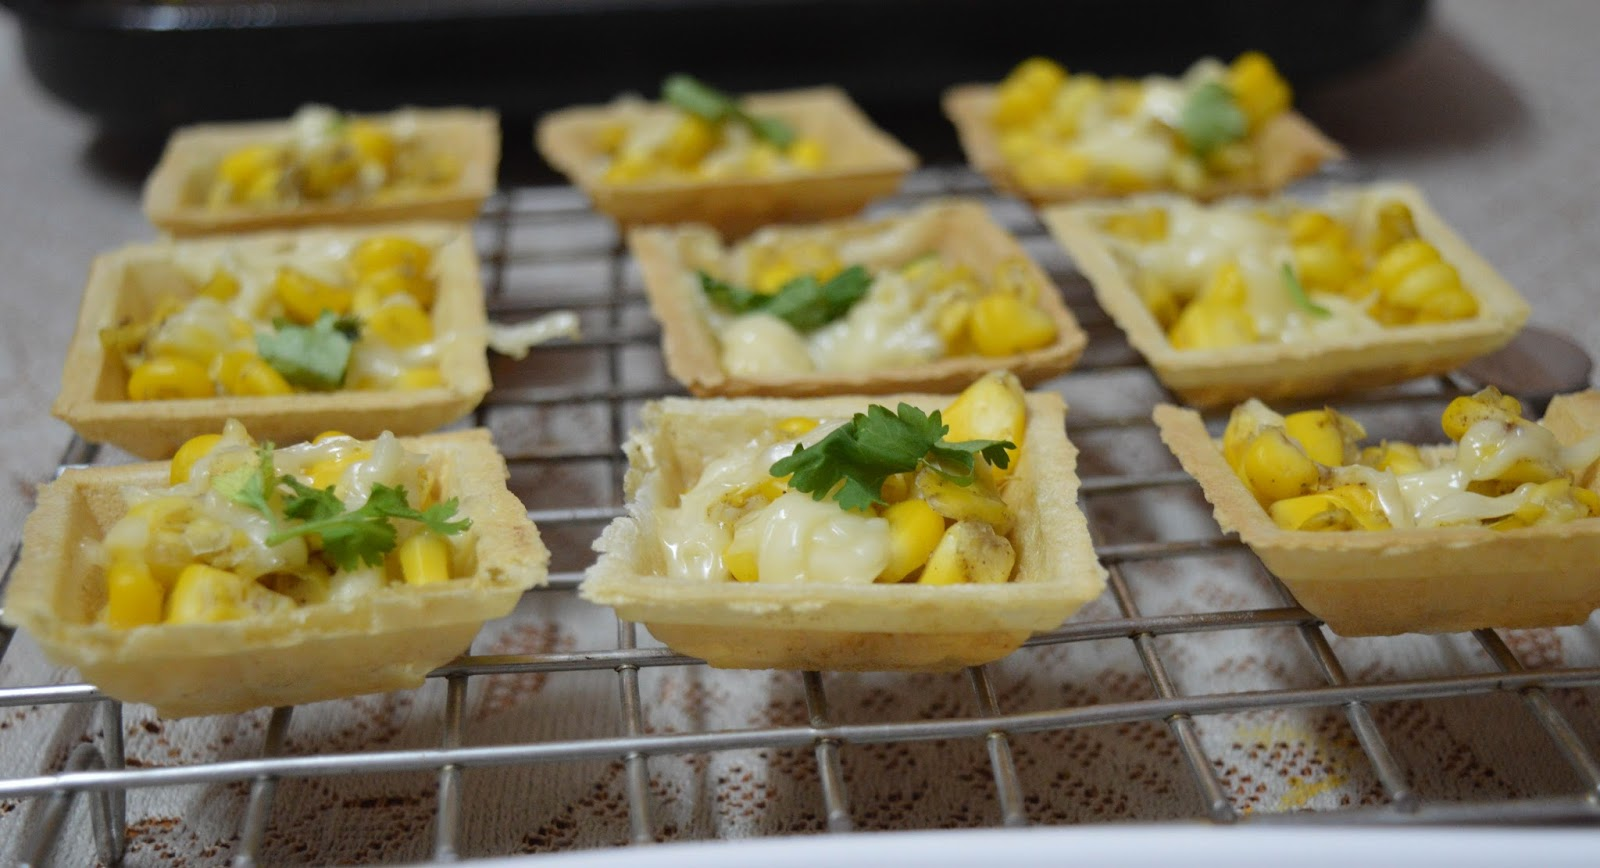 Babi 39 s recipes corn canapes chaat easy canape recipe for Canape receipes